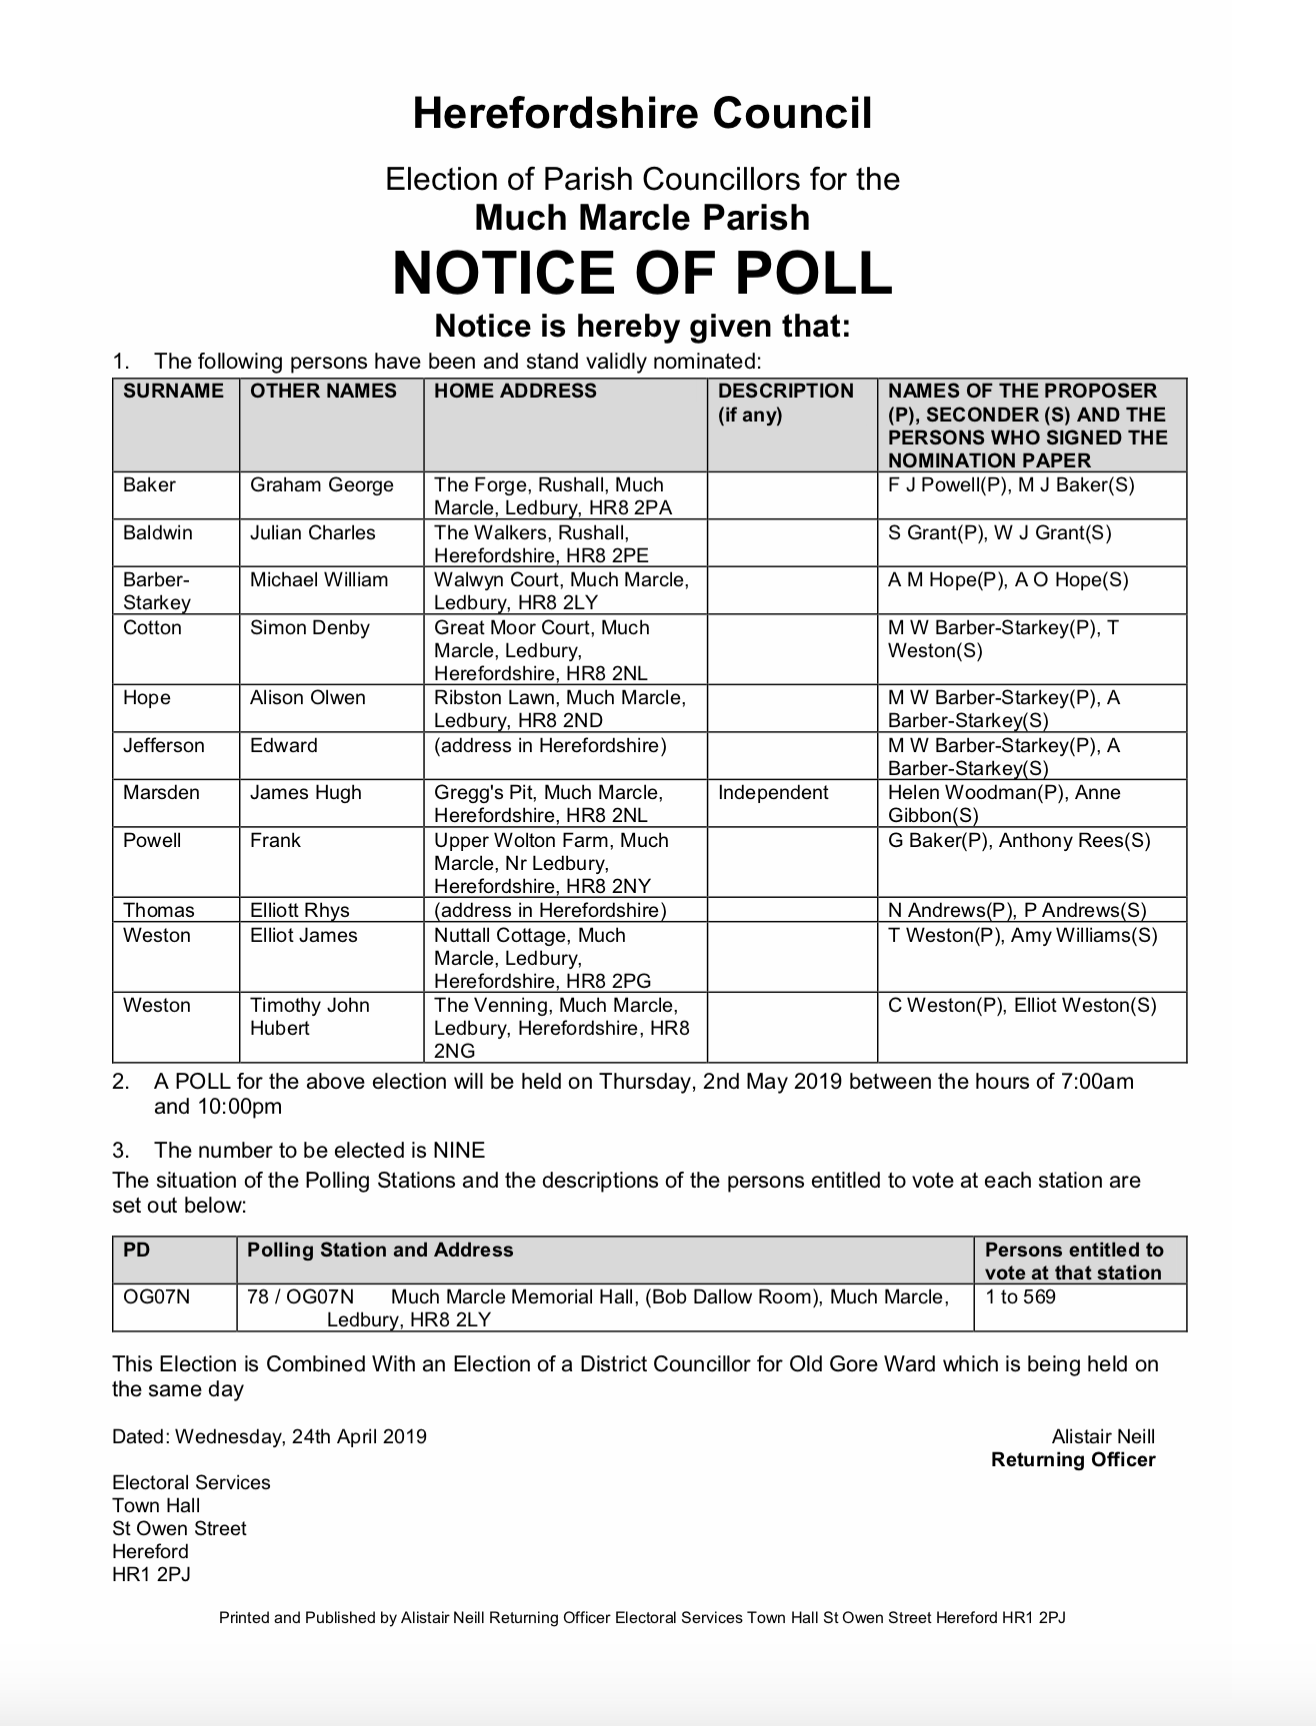 Notice of poll 2019